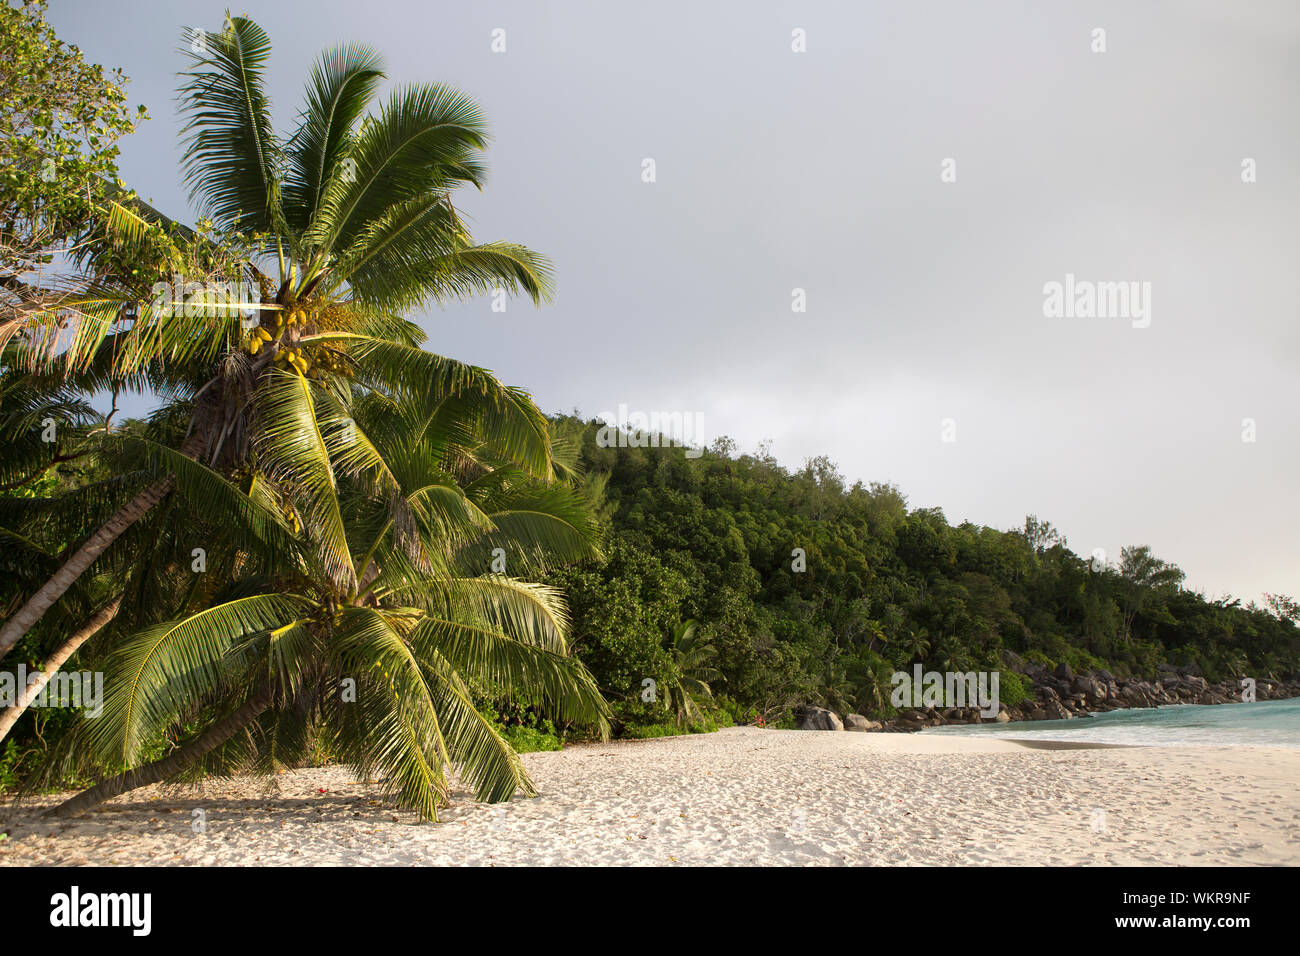 Beach panorama with palm trees, Praslin island, Seychelles Stock Photo